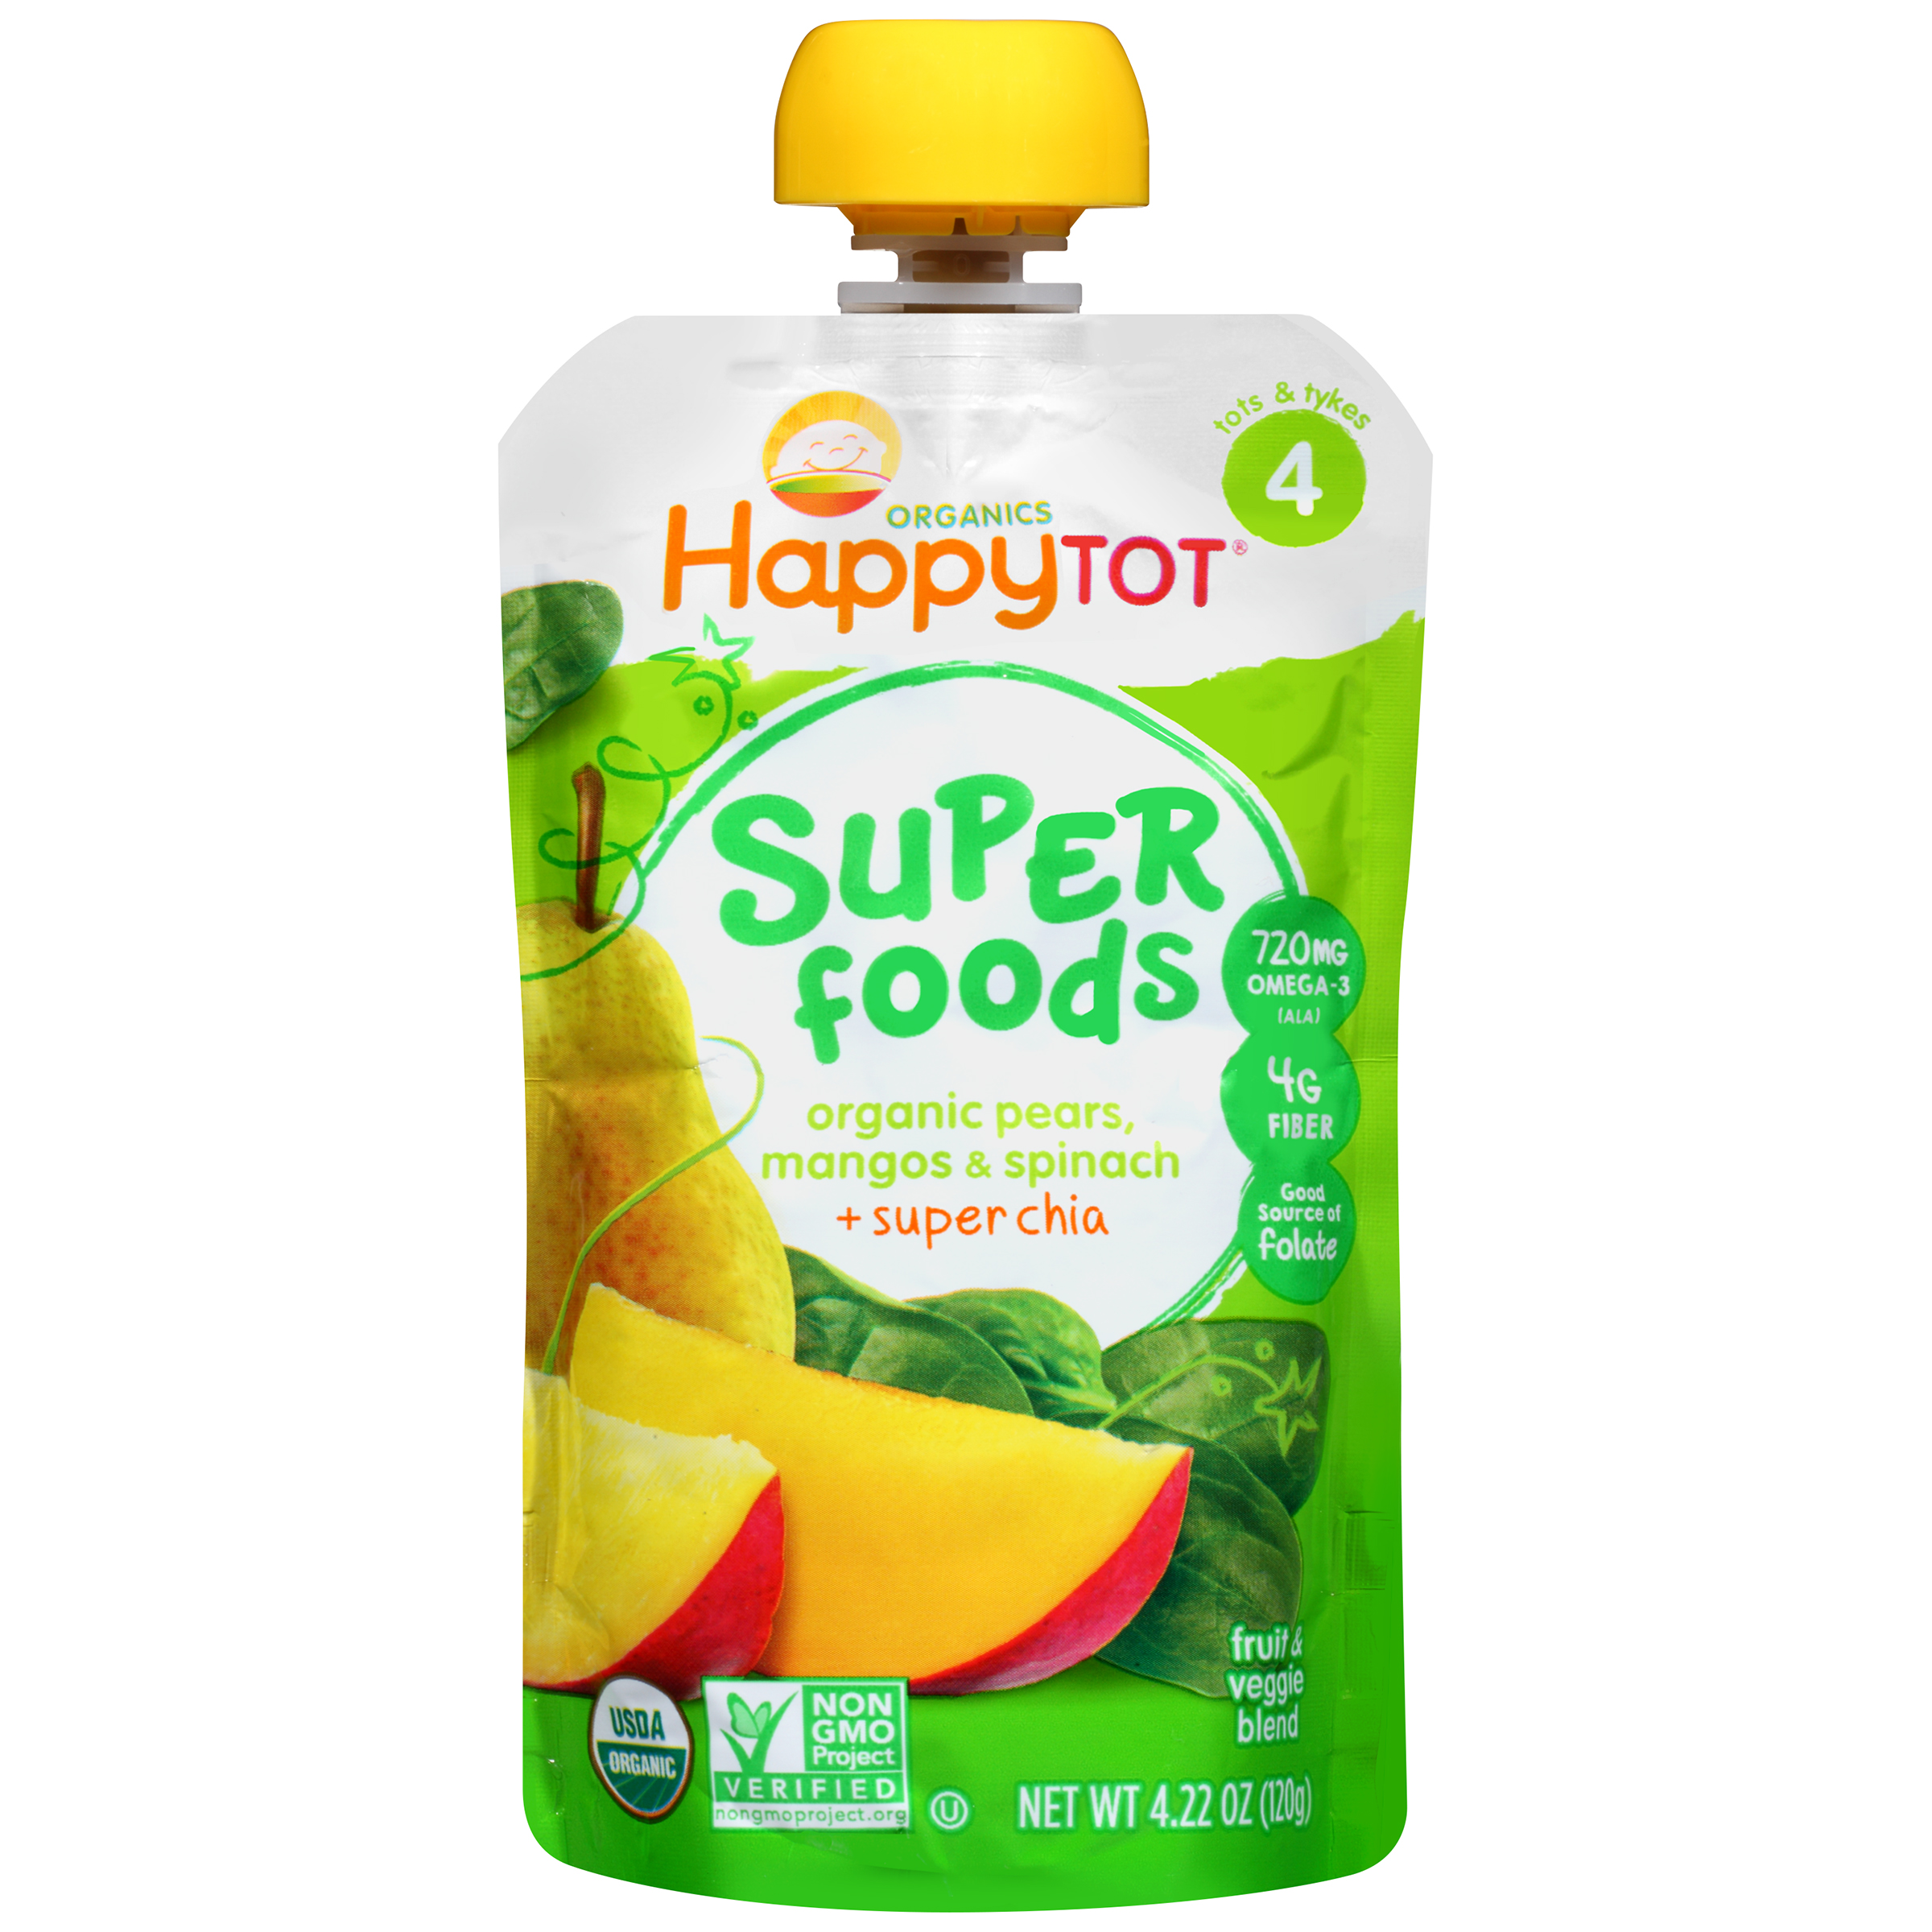 Happy Tot® Superfoods Organic Pears, Mangos & Spinach + Super Chia Fruit & Veggie Blend 4.22 oz. Pouch